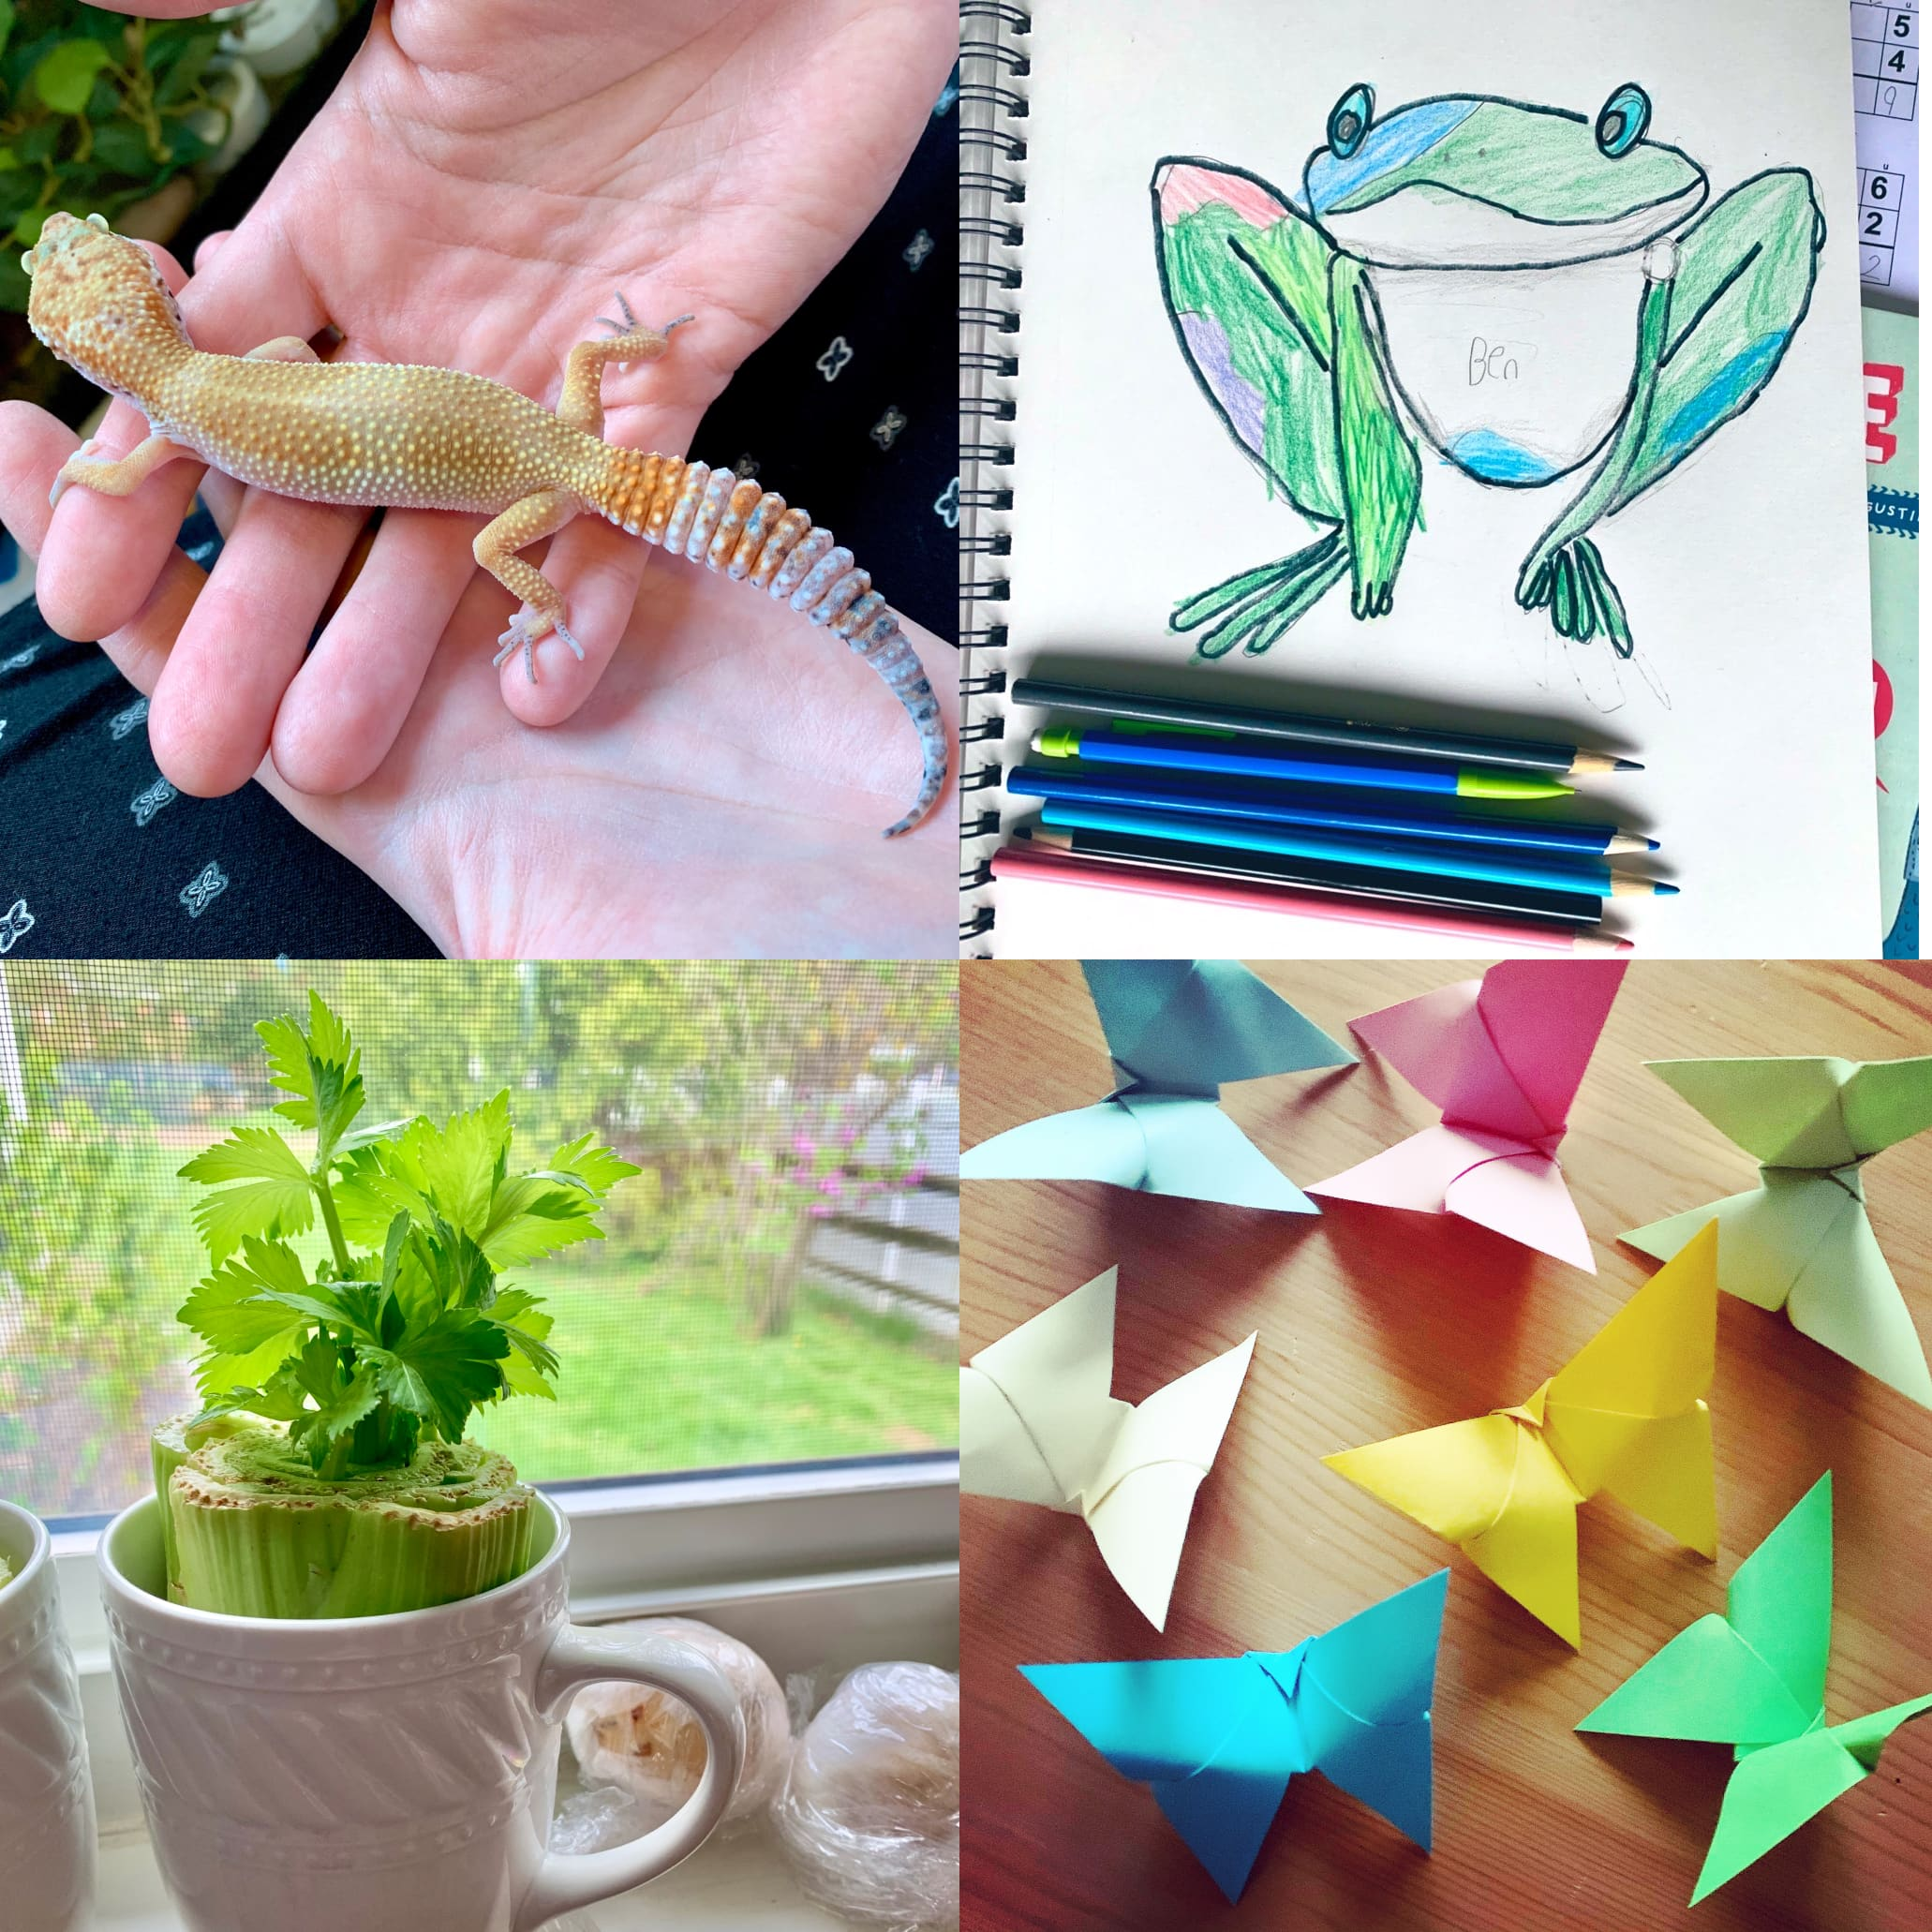 A lizard, origami, drawing, and celery plant